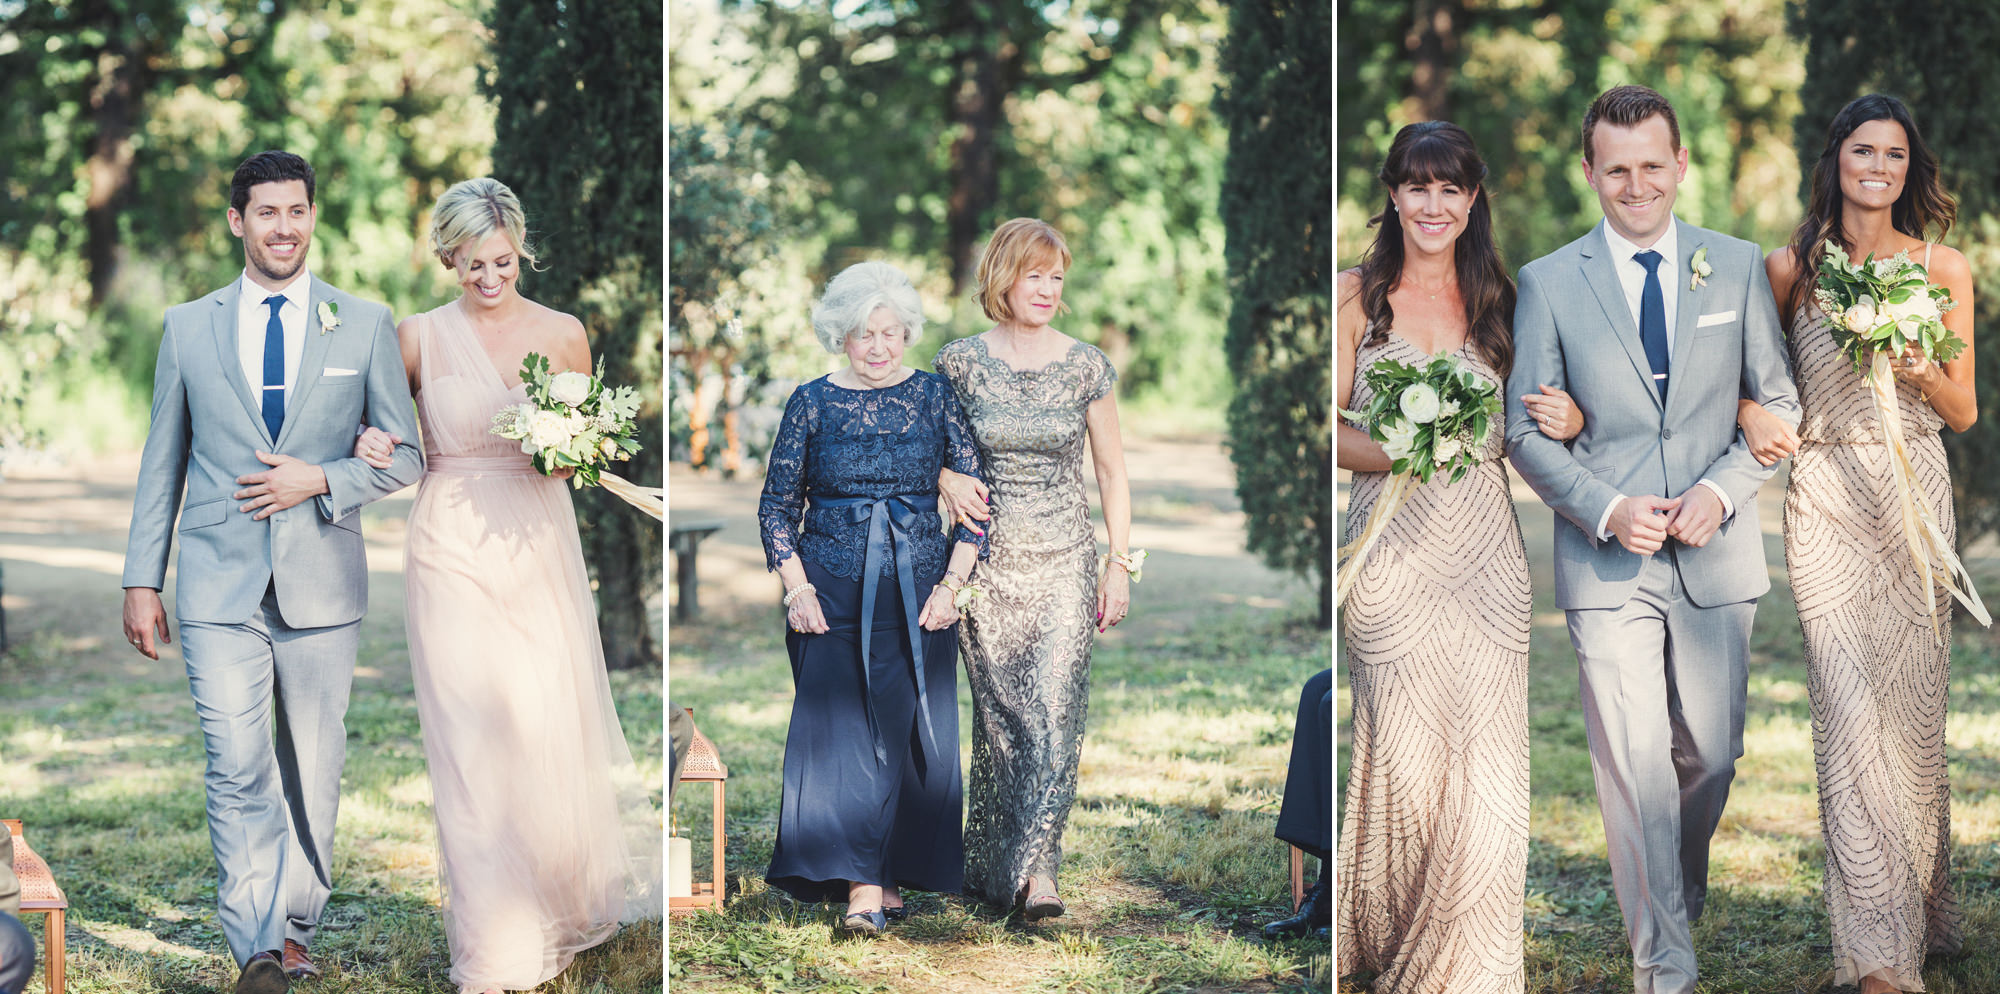 Wedding in Campovida @Anne-Claire Brun 56